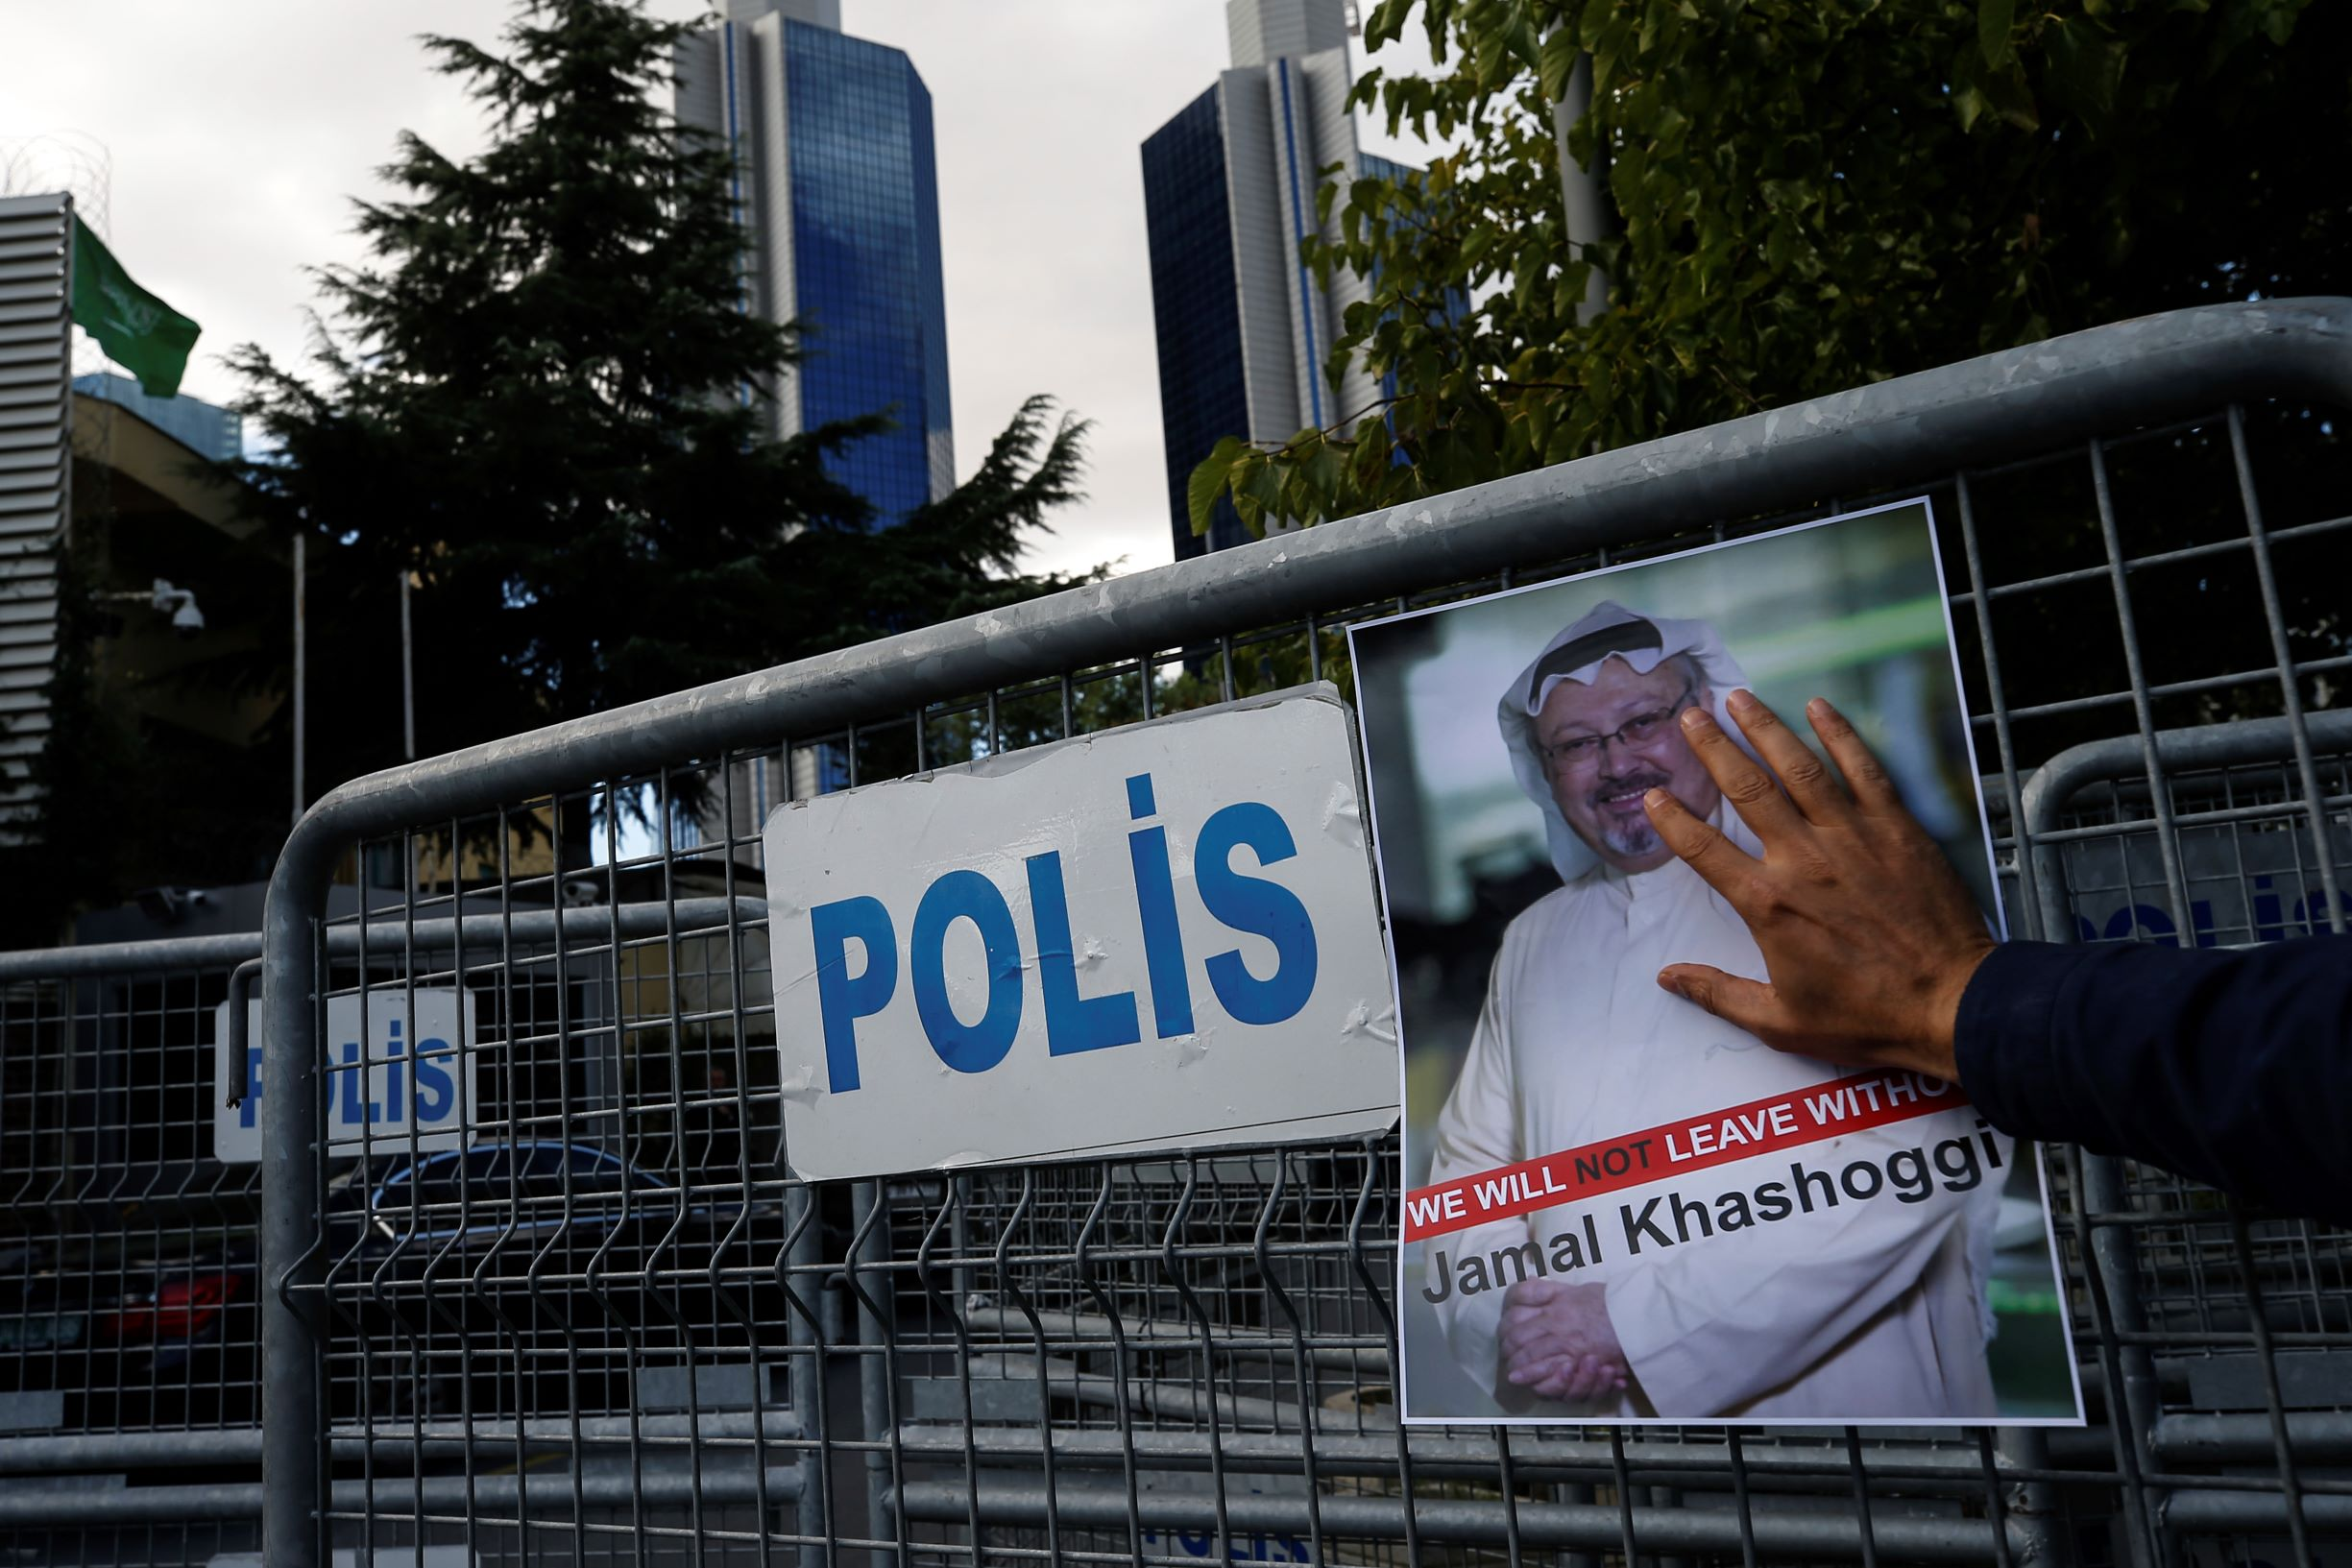 Protests Demand Justice For Jamal Khashoggi | Multimedia